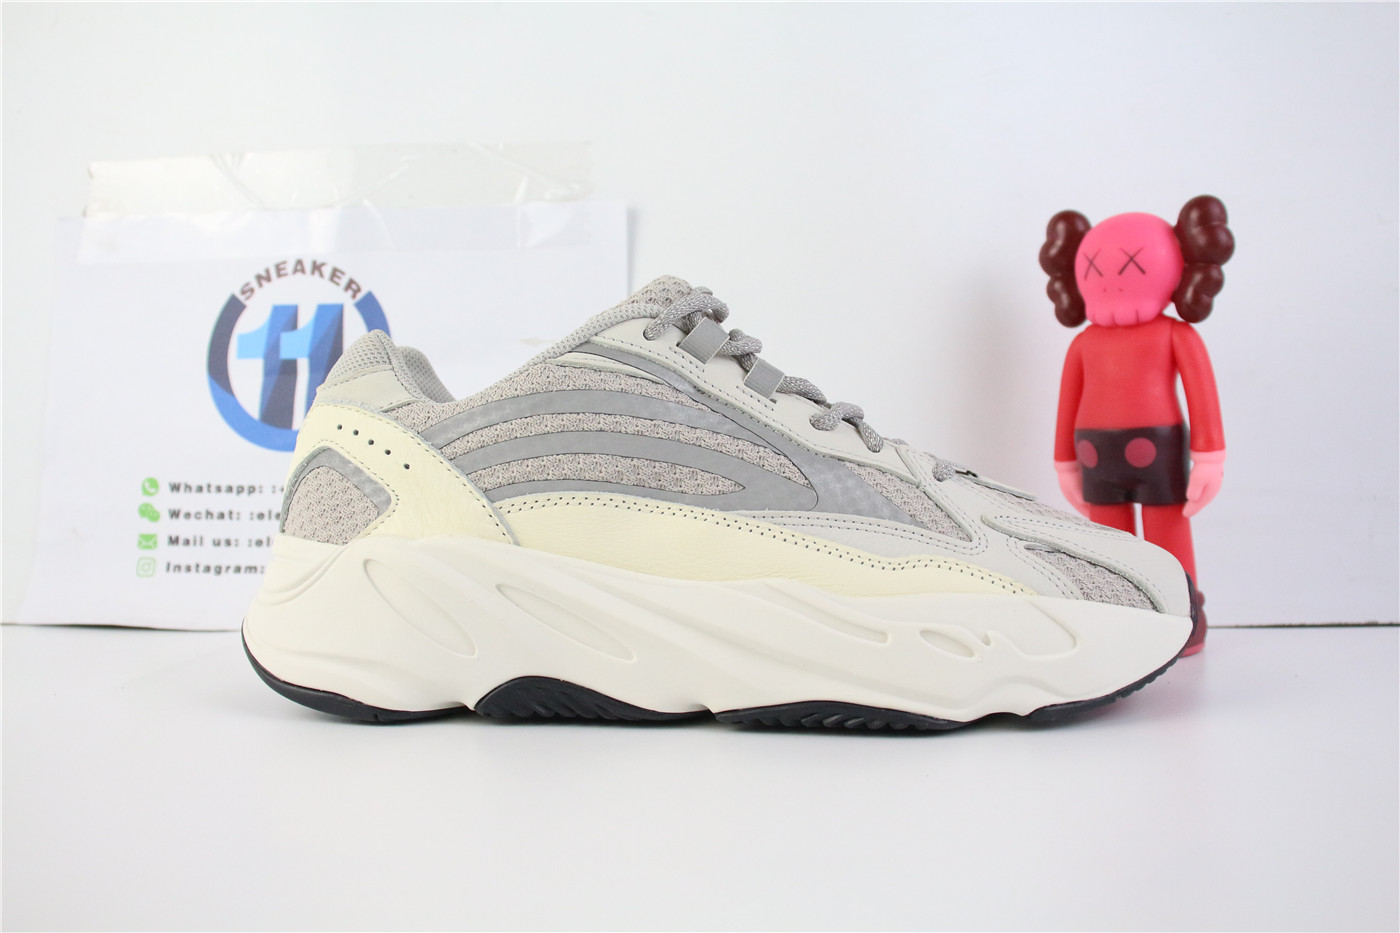 Adidas Yeezy 700 V2 Static 2829,All Products : Eleven Kicks, Eleven Kicks